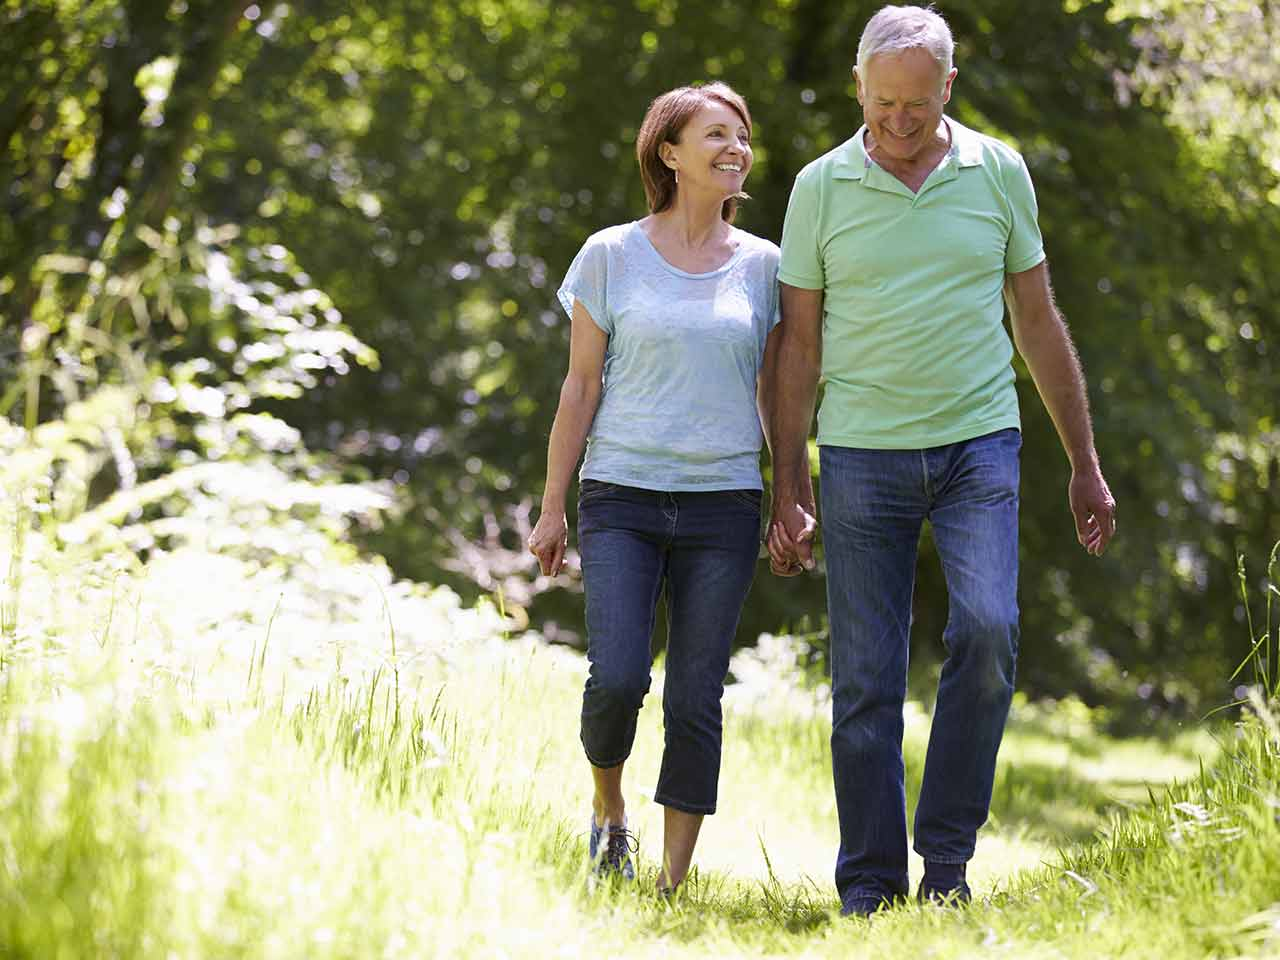 Mature couple laughing and walking in the sun